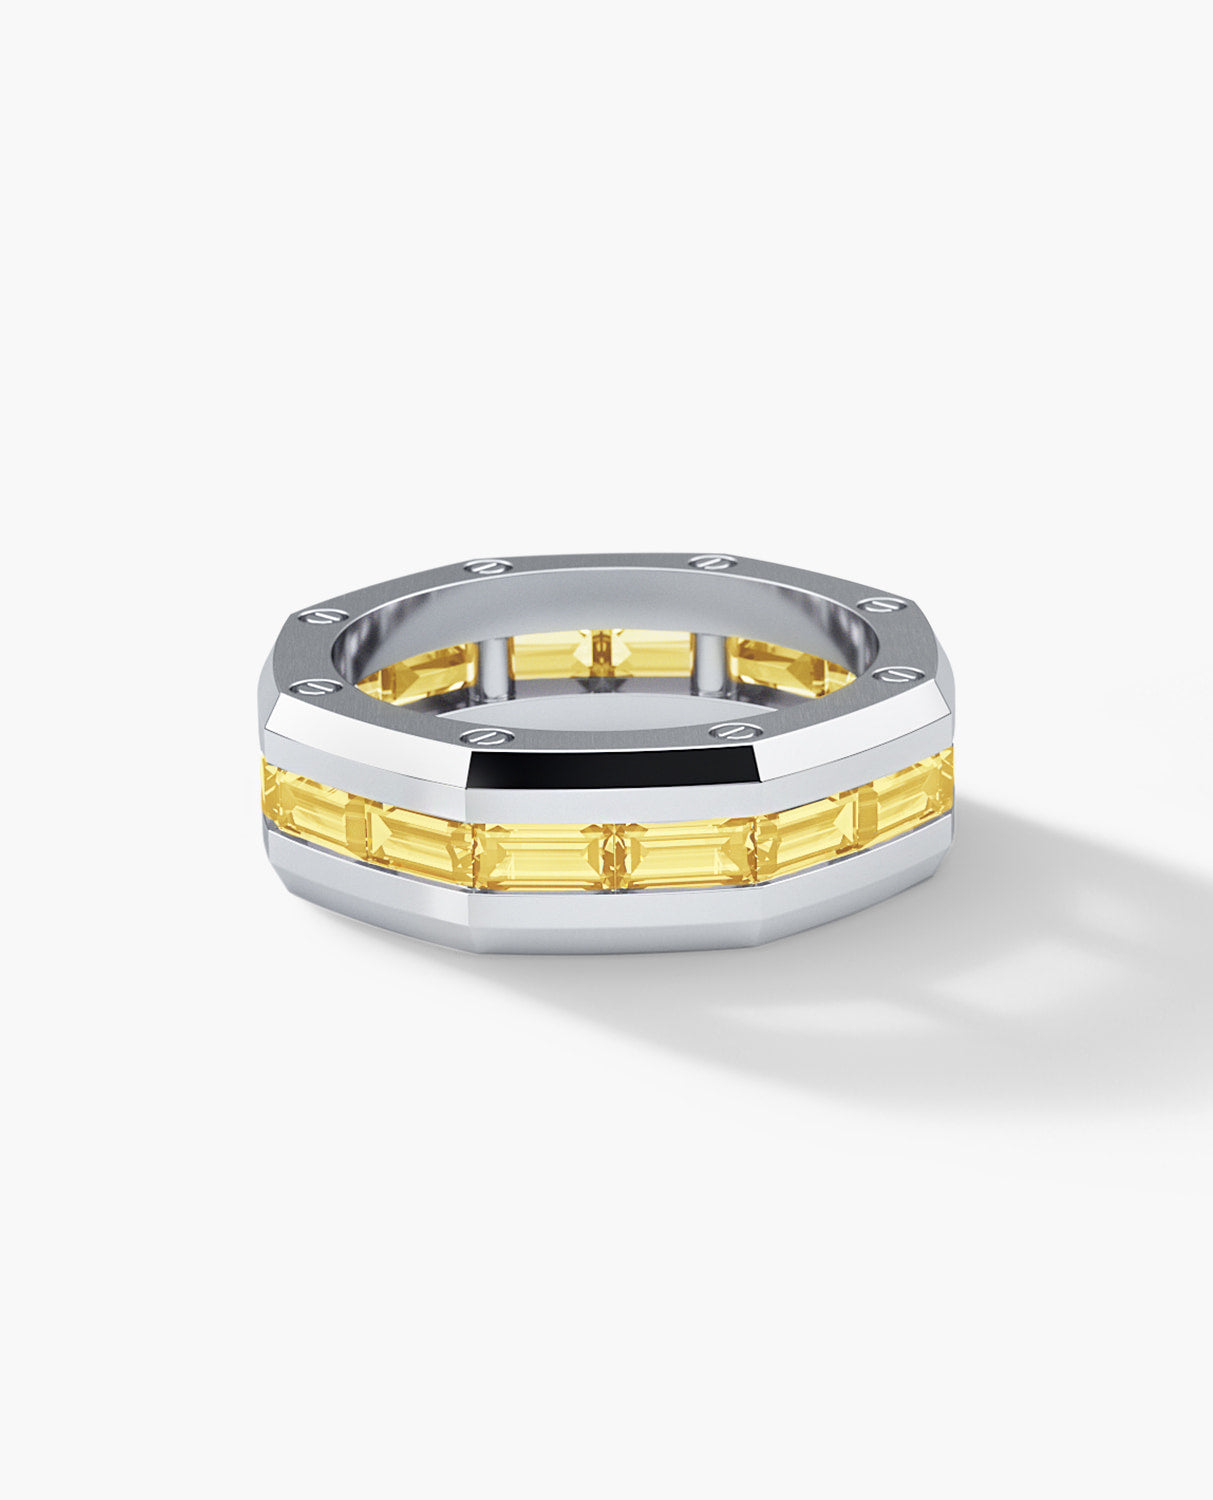 GRANT Mens Gold Wedding Band with Yellow Diamonds